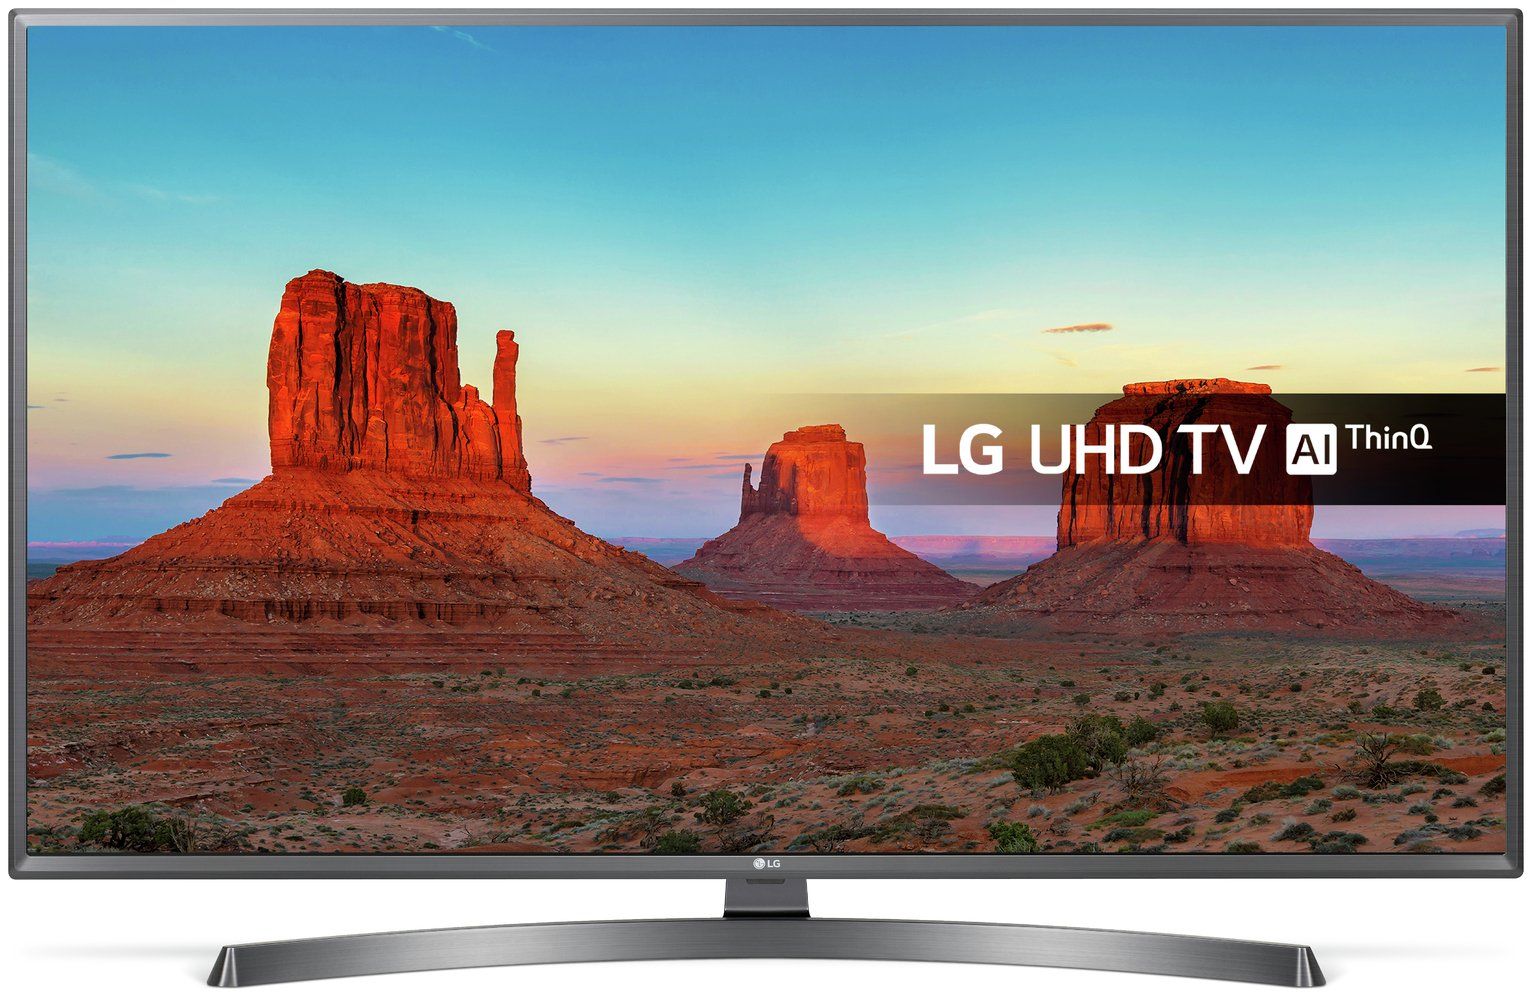 LG 43 Inch 43UK6750PLD Smart Ultra HD TV with HDR from LG